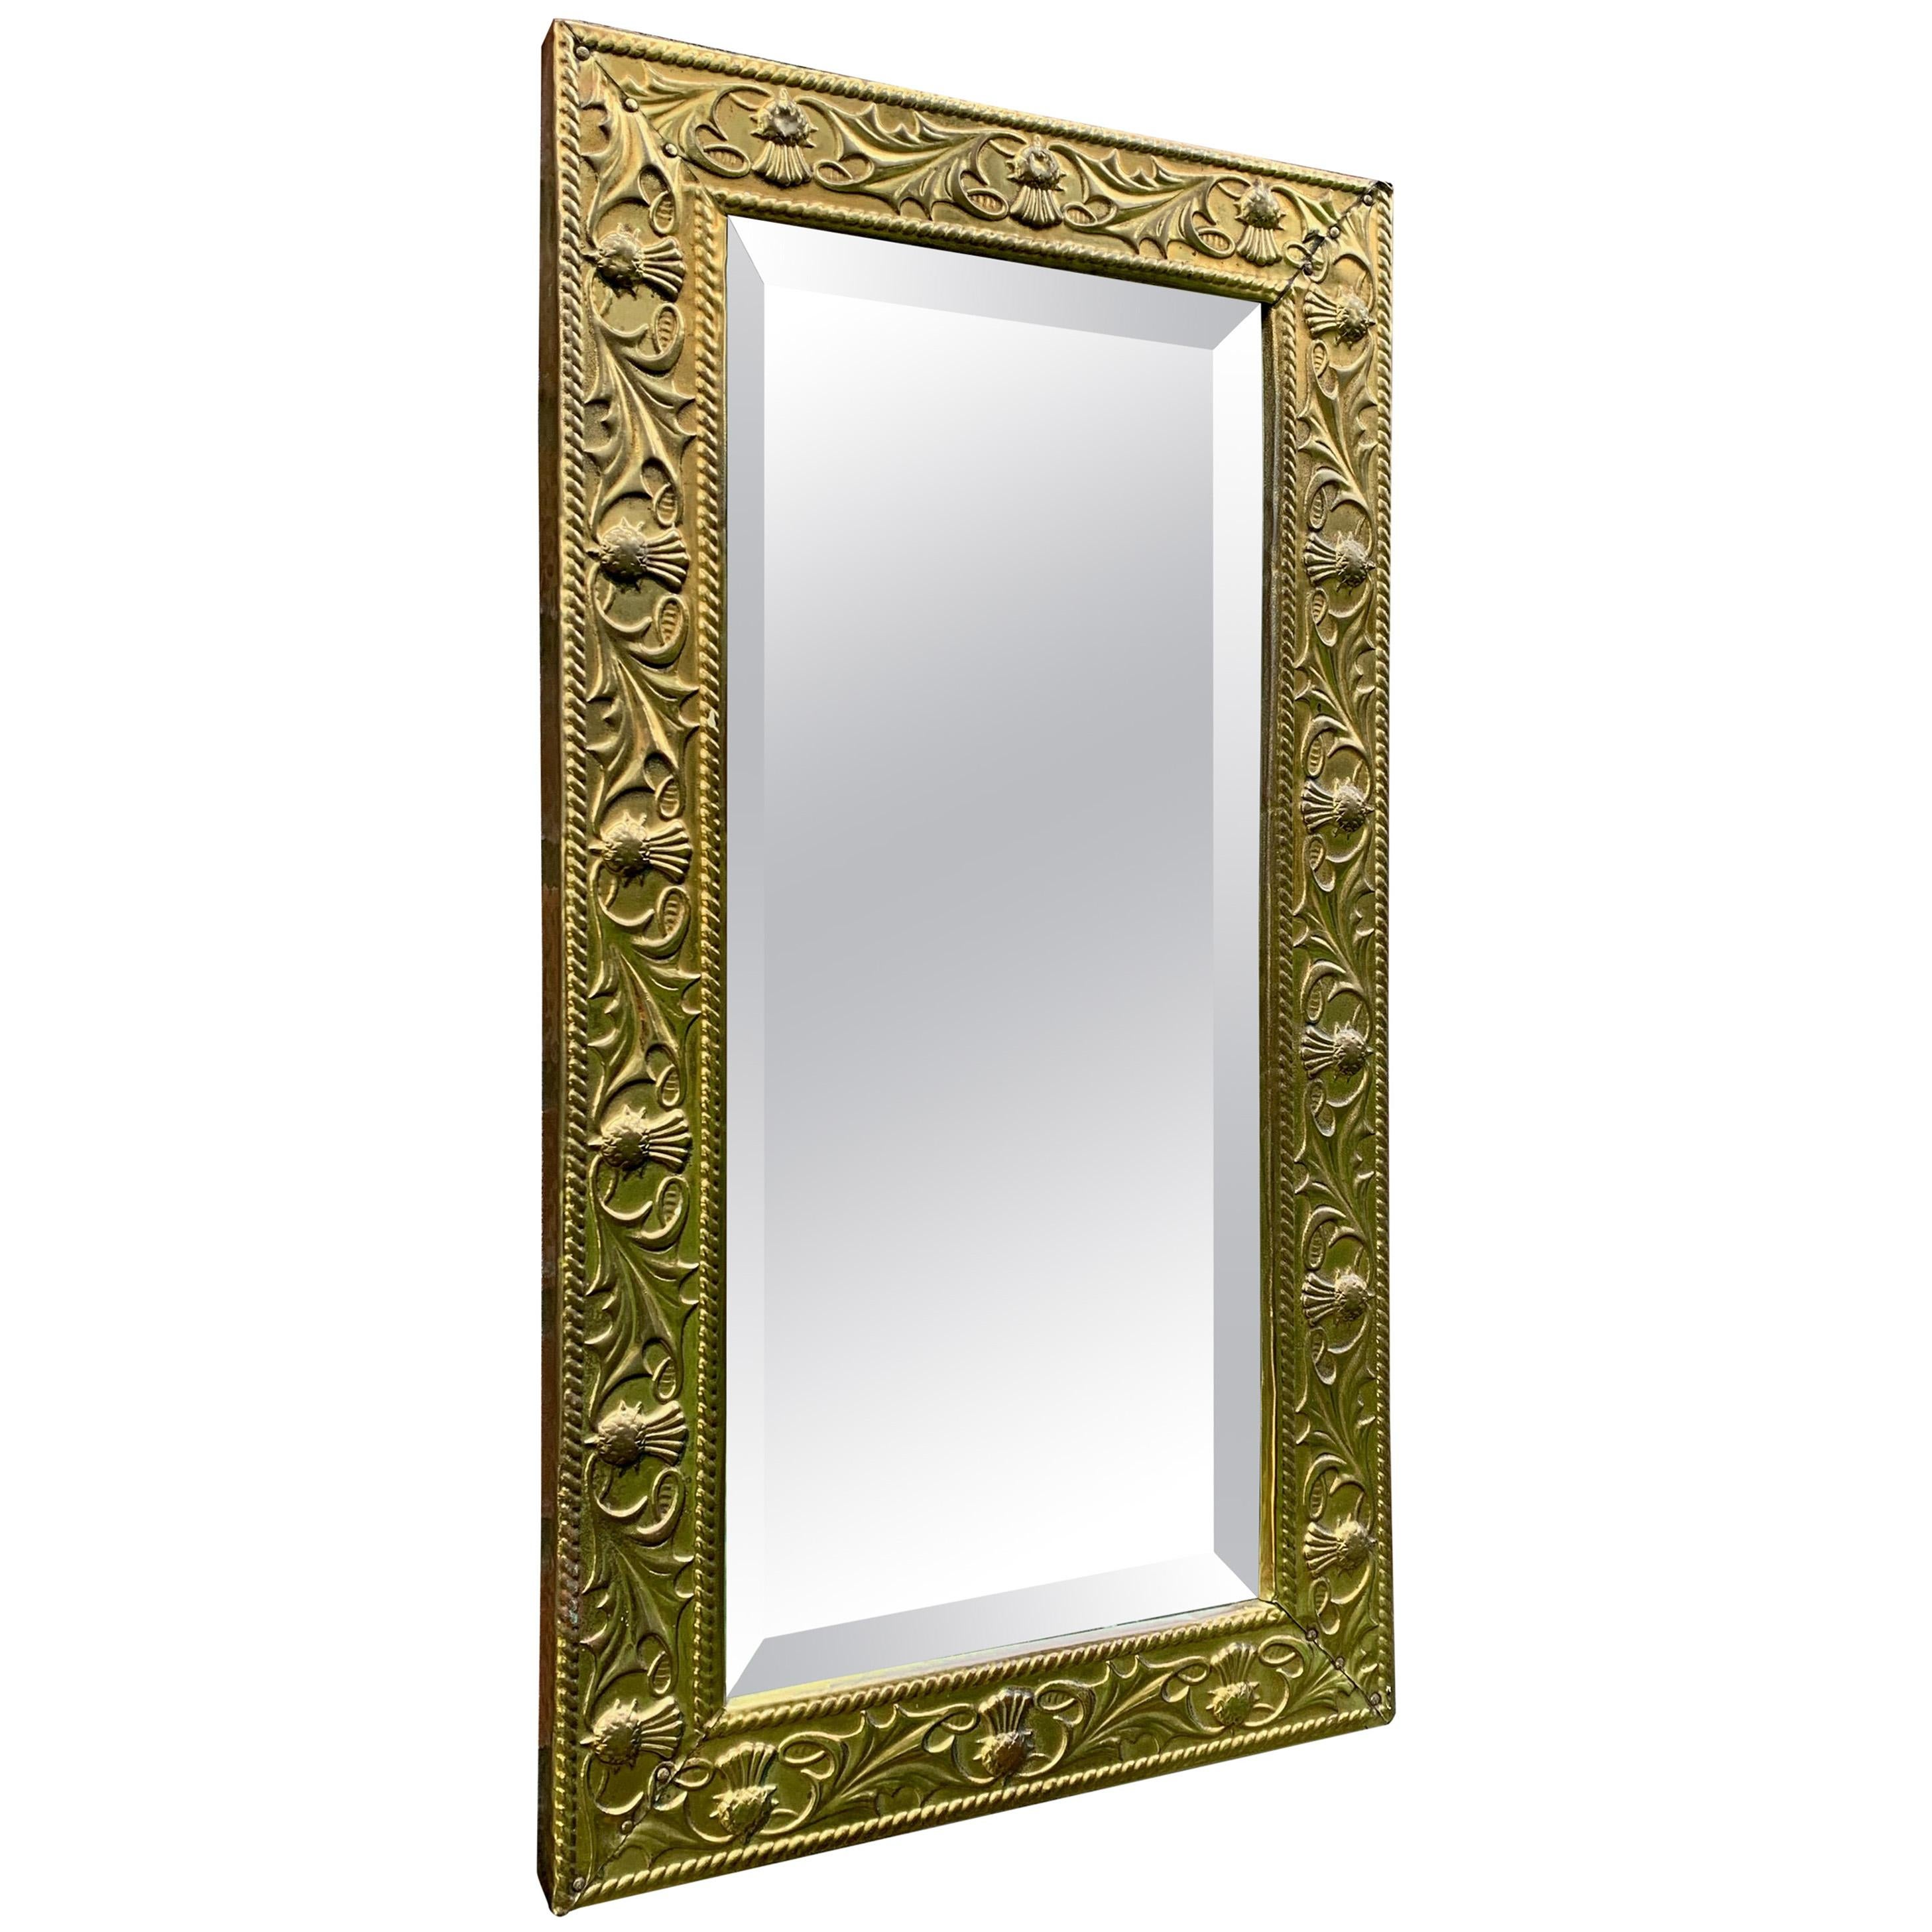 Arts & Crafts Wall Mirror with Stylized and Embossed Brass Thistle Flowers Frame